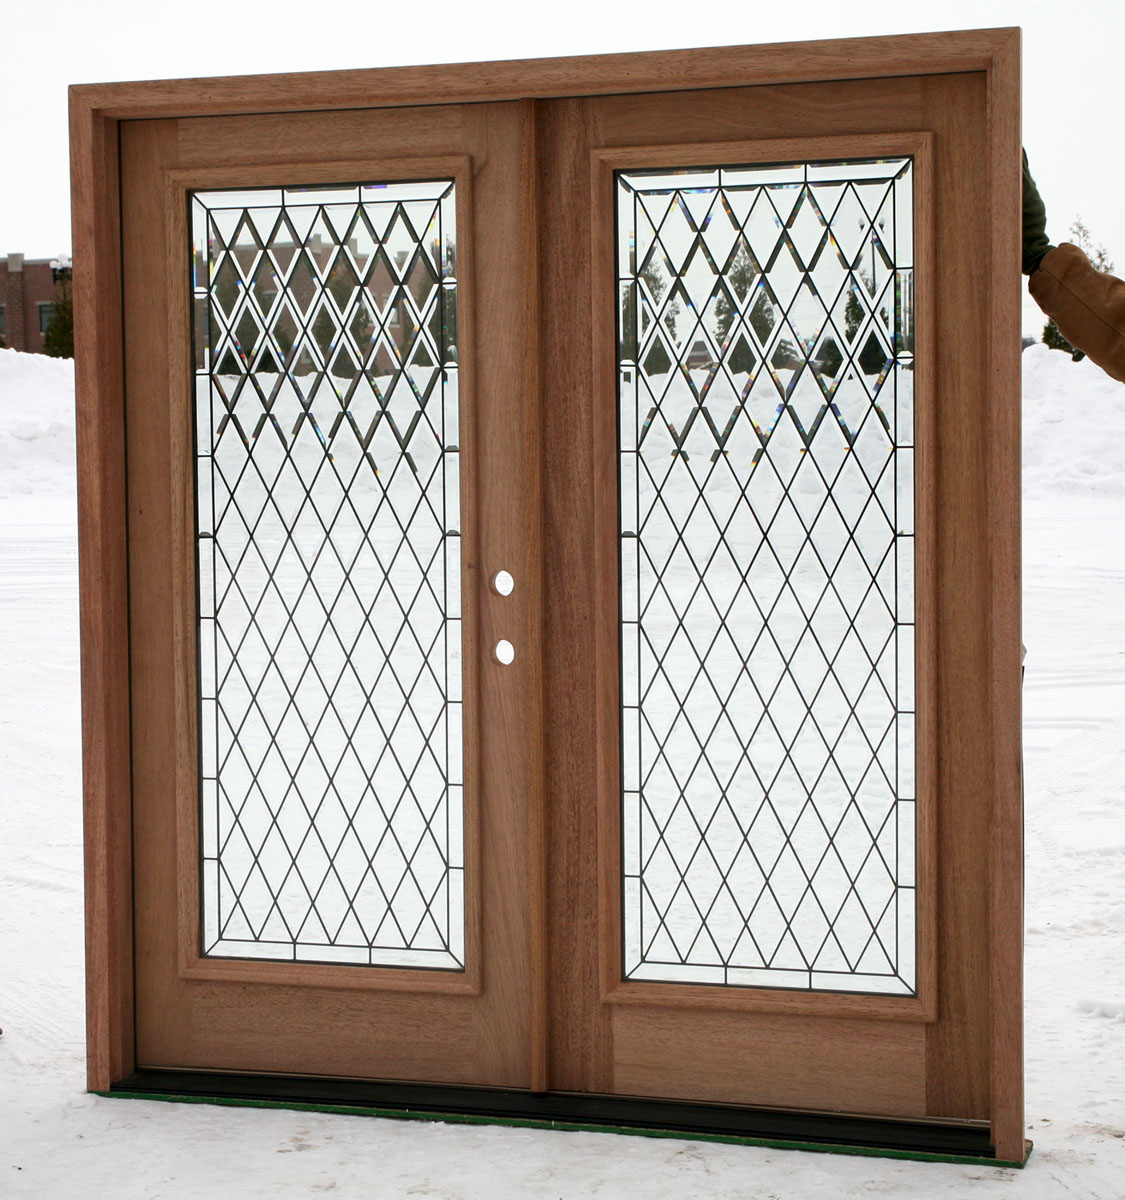 Exterior double doors full lite double doors for Exterior double doors with glass